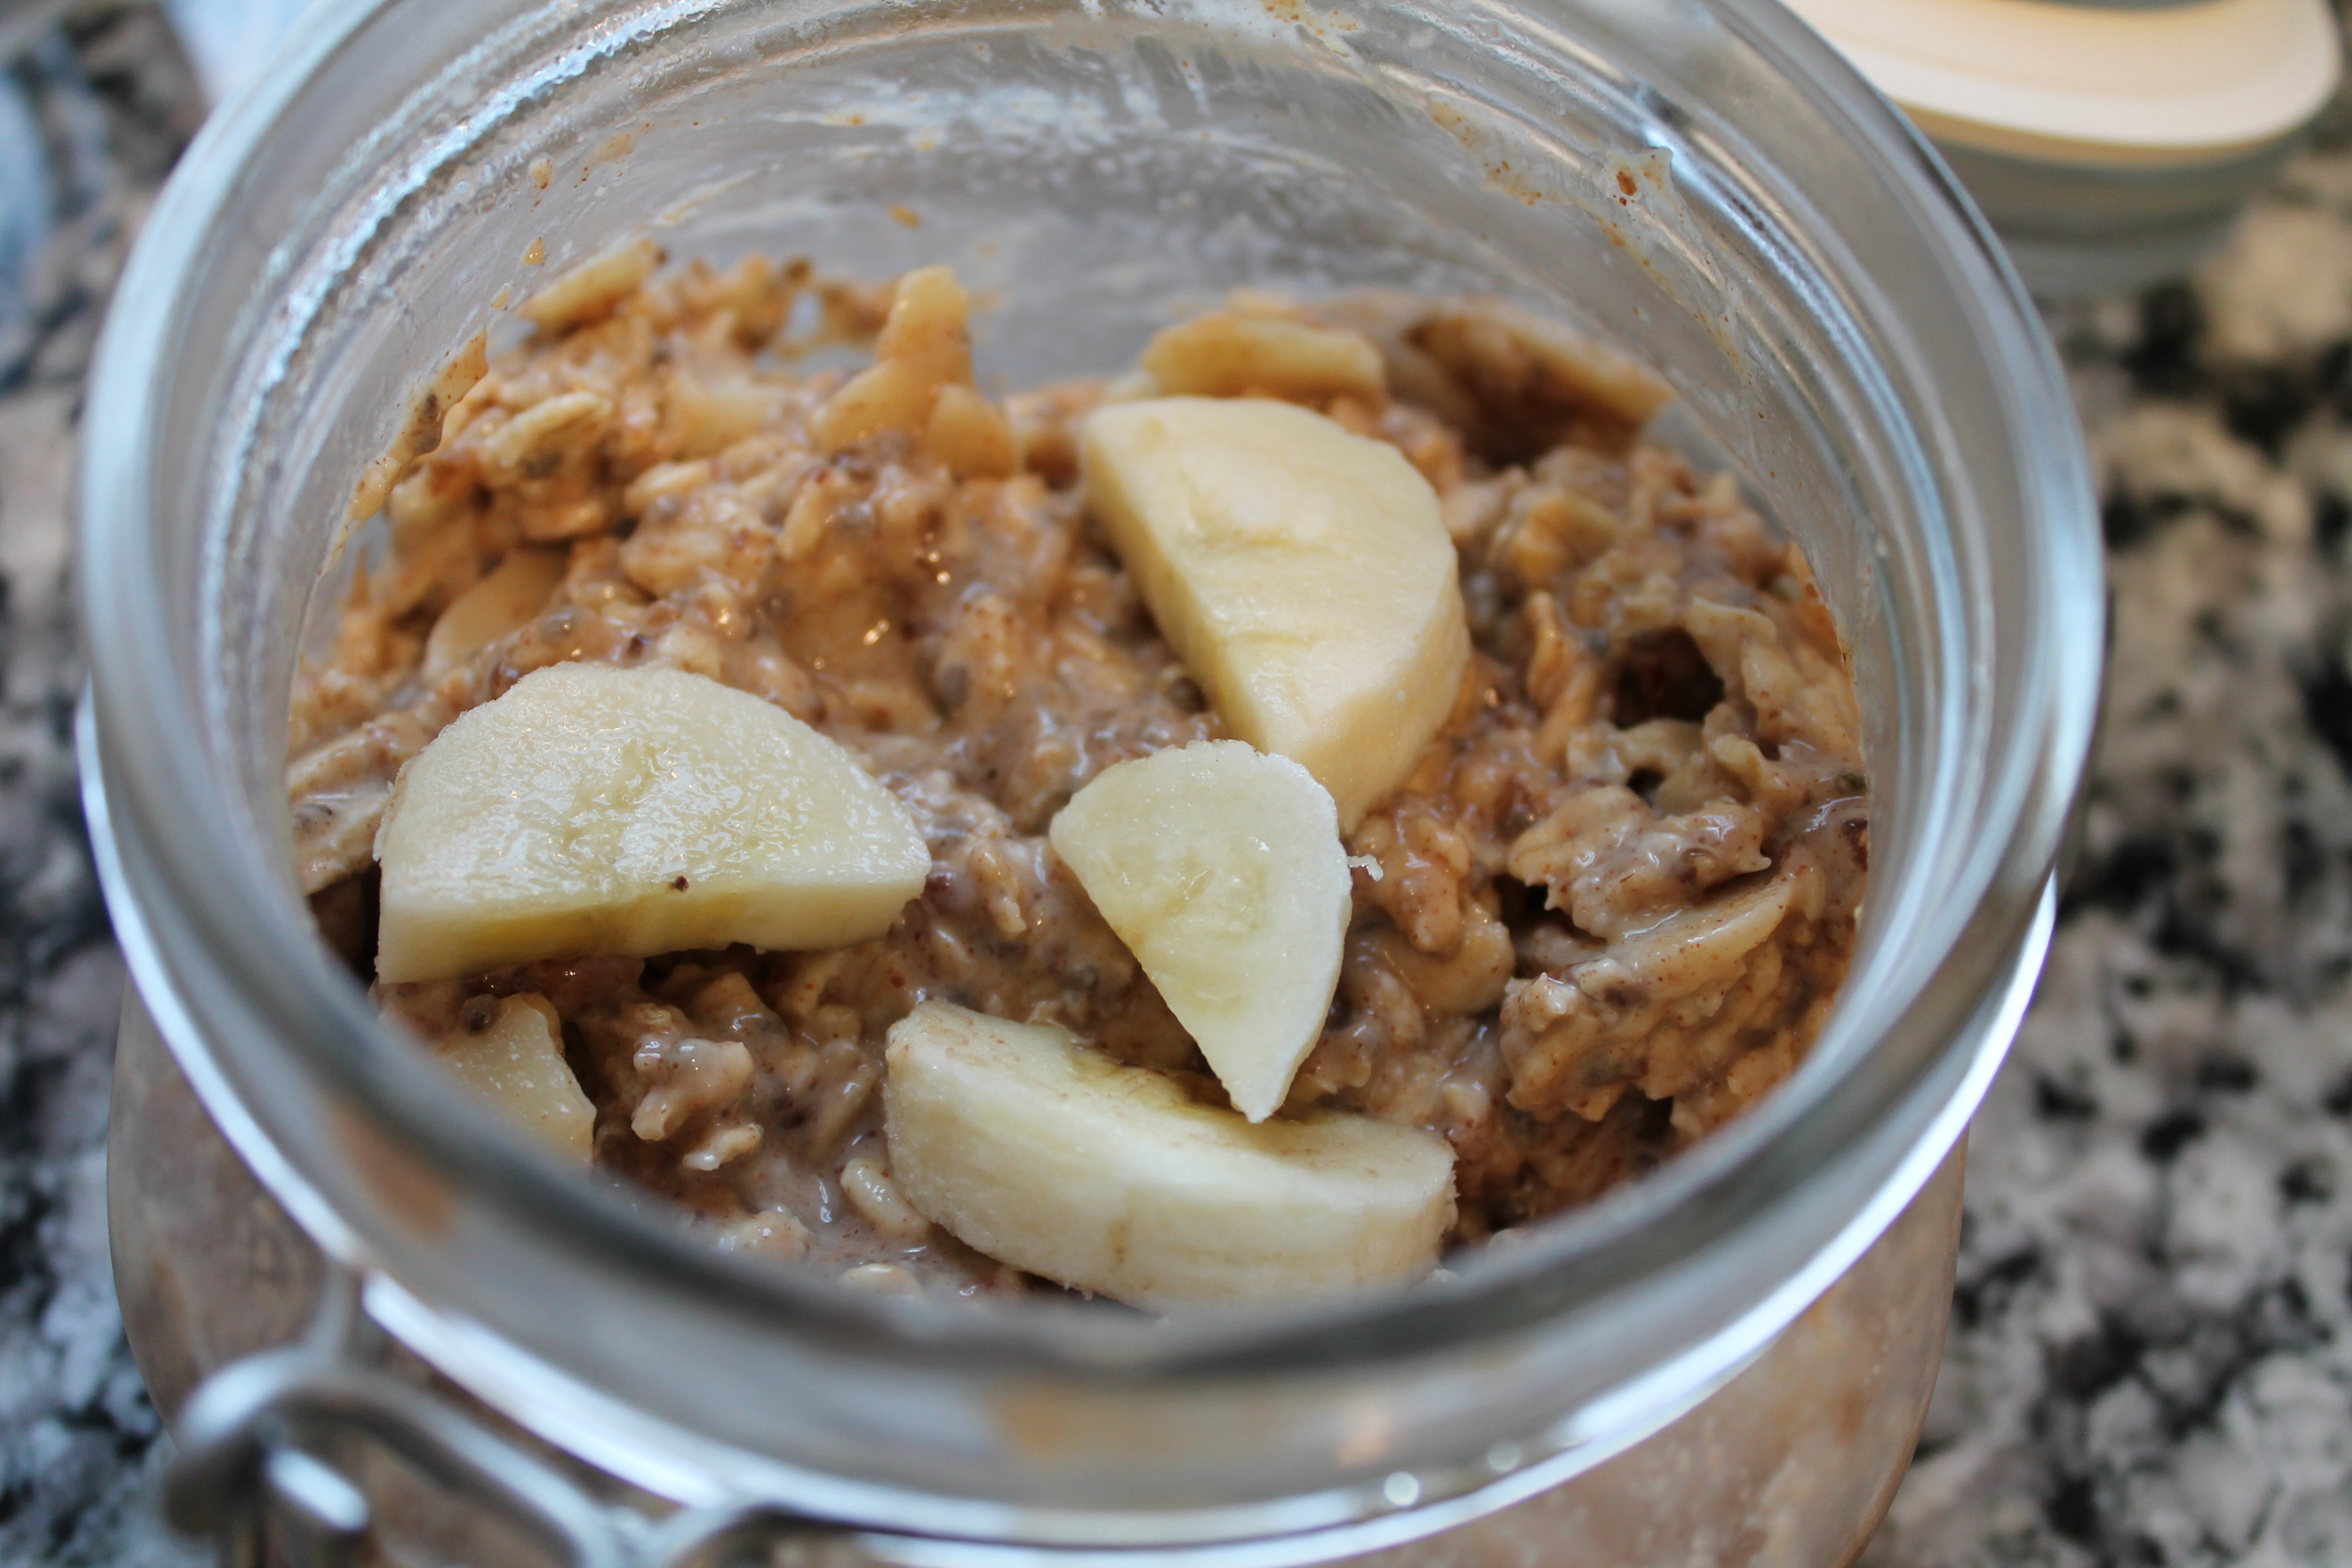 Banana almond butter overnight oats ready to eat, with extra fresh bananas cut on top